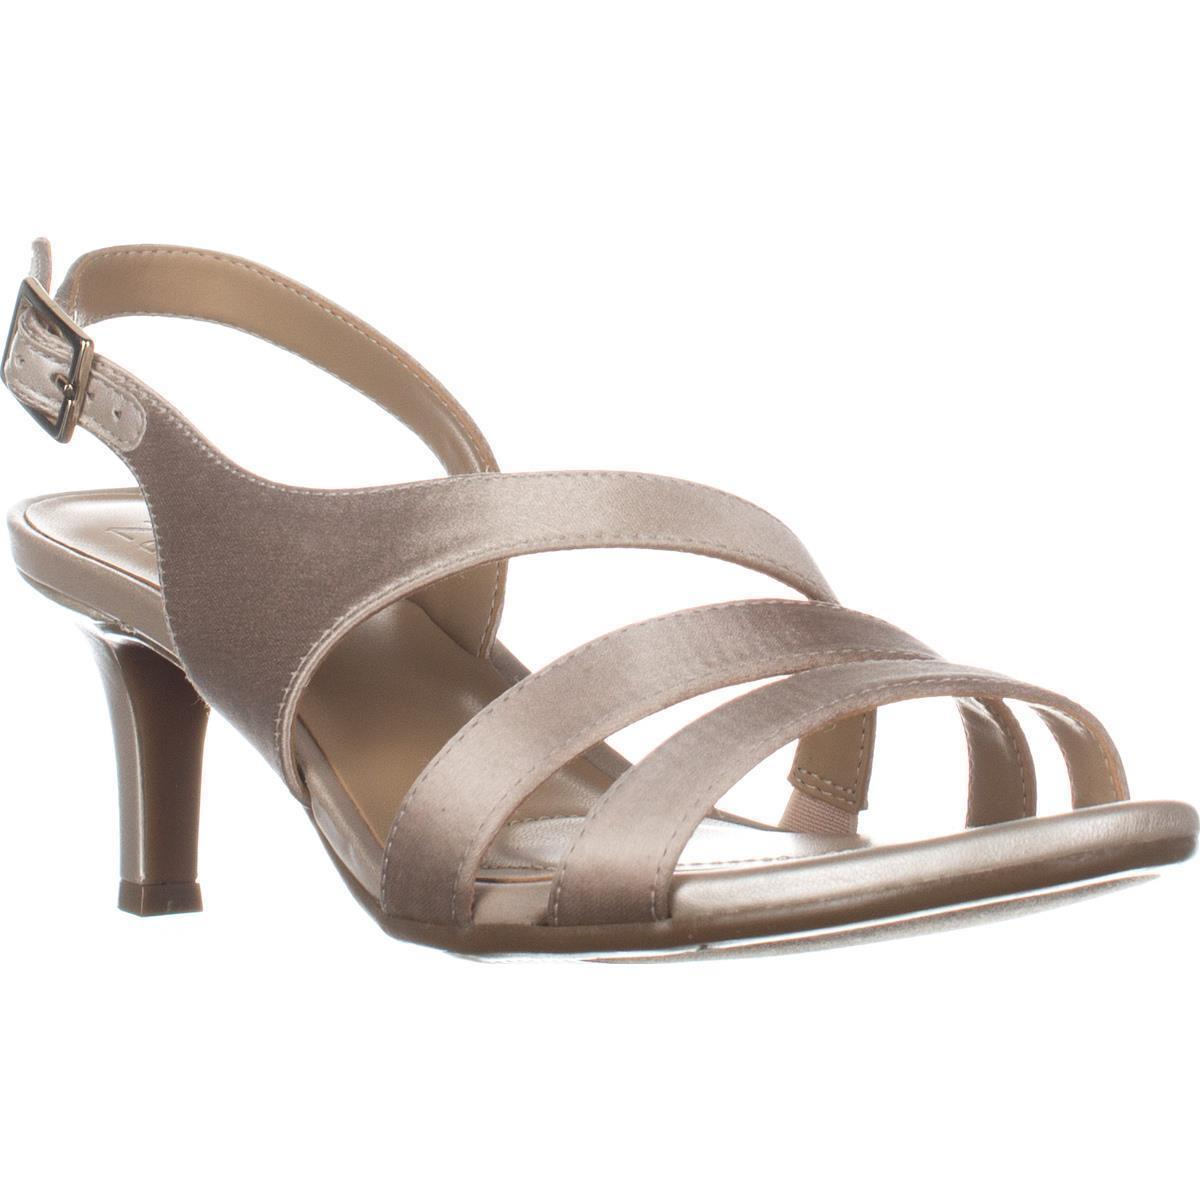 Womens Naturalizer Taimi Comfort Dress Sandals, Champagne by Naturalizer